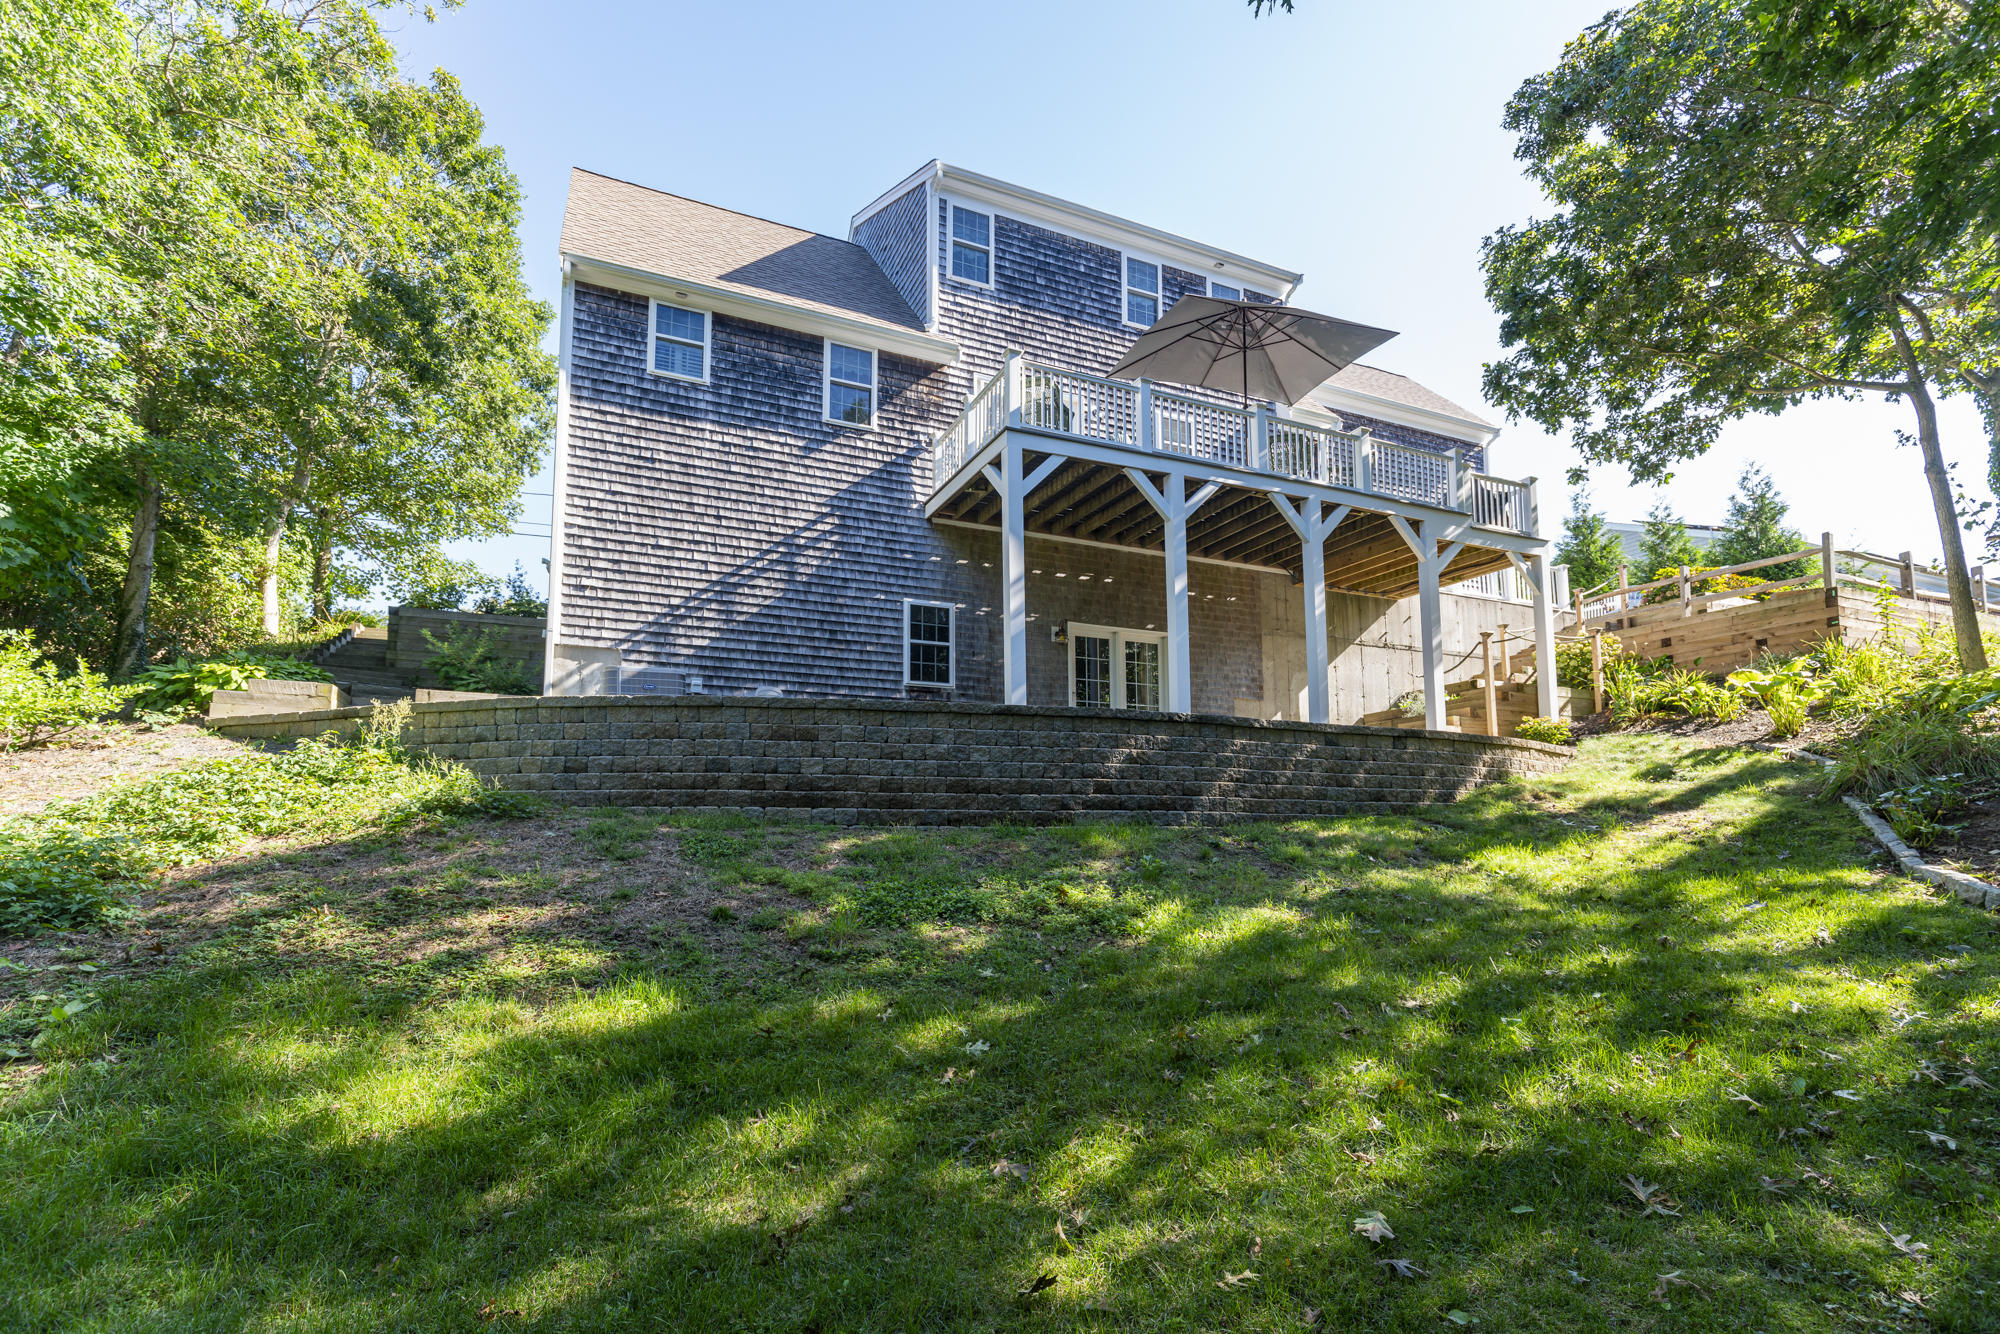 100 Old Mail Road, North Chatham, MA  02650 - slide 37